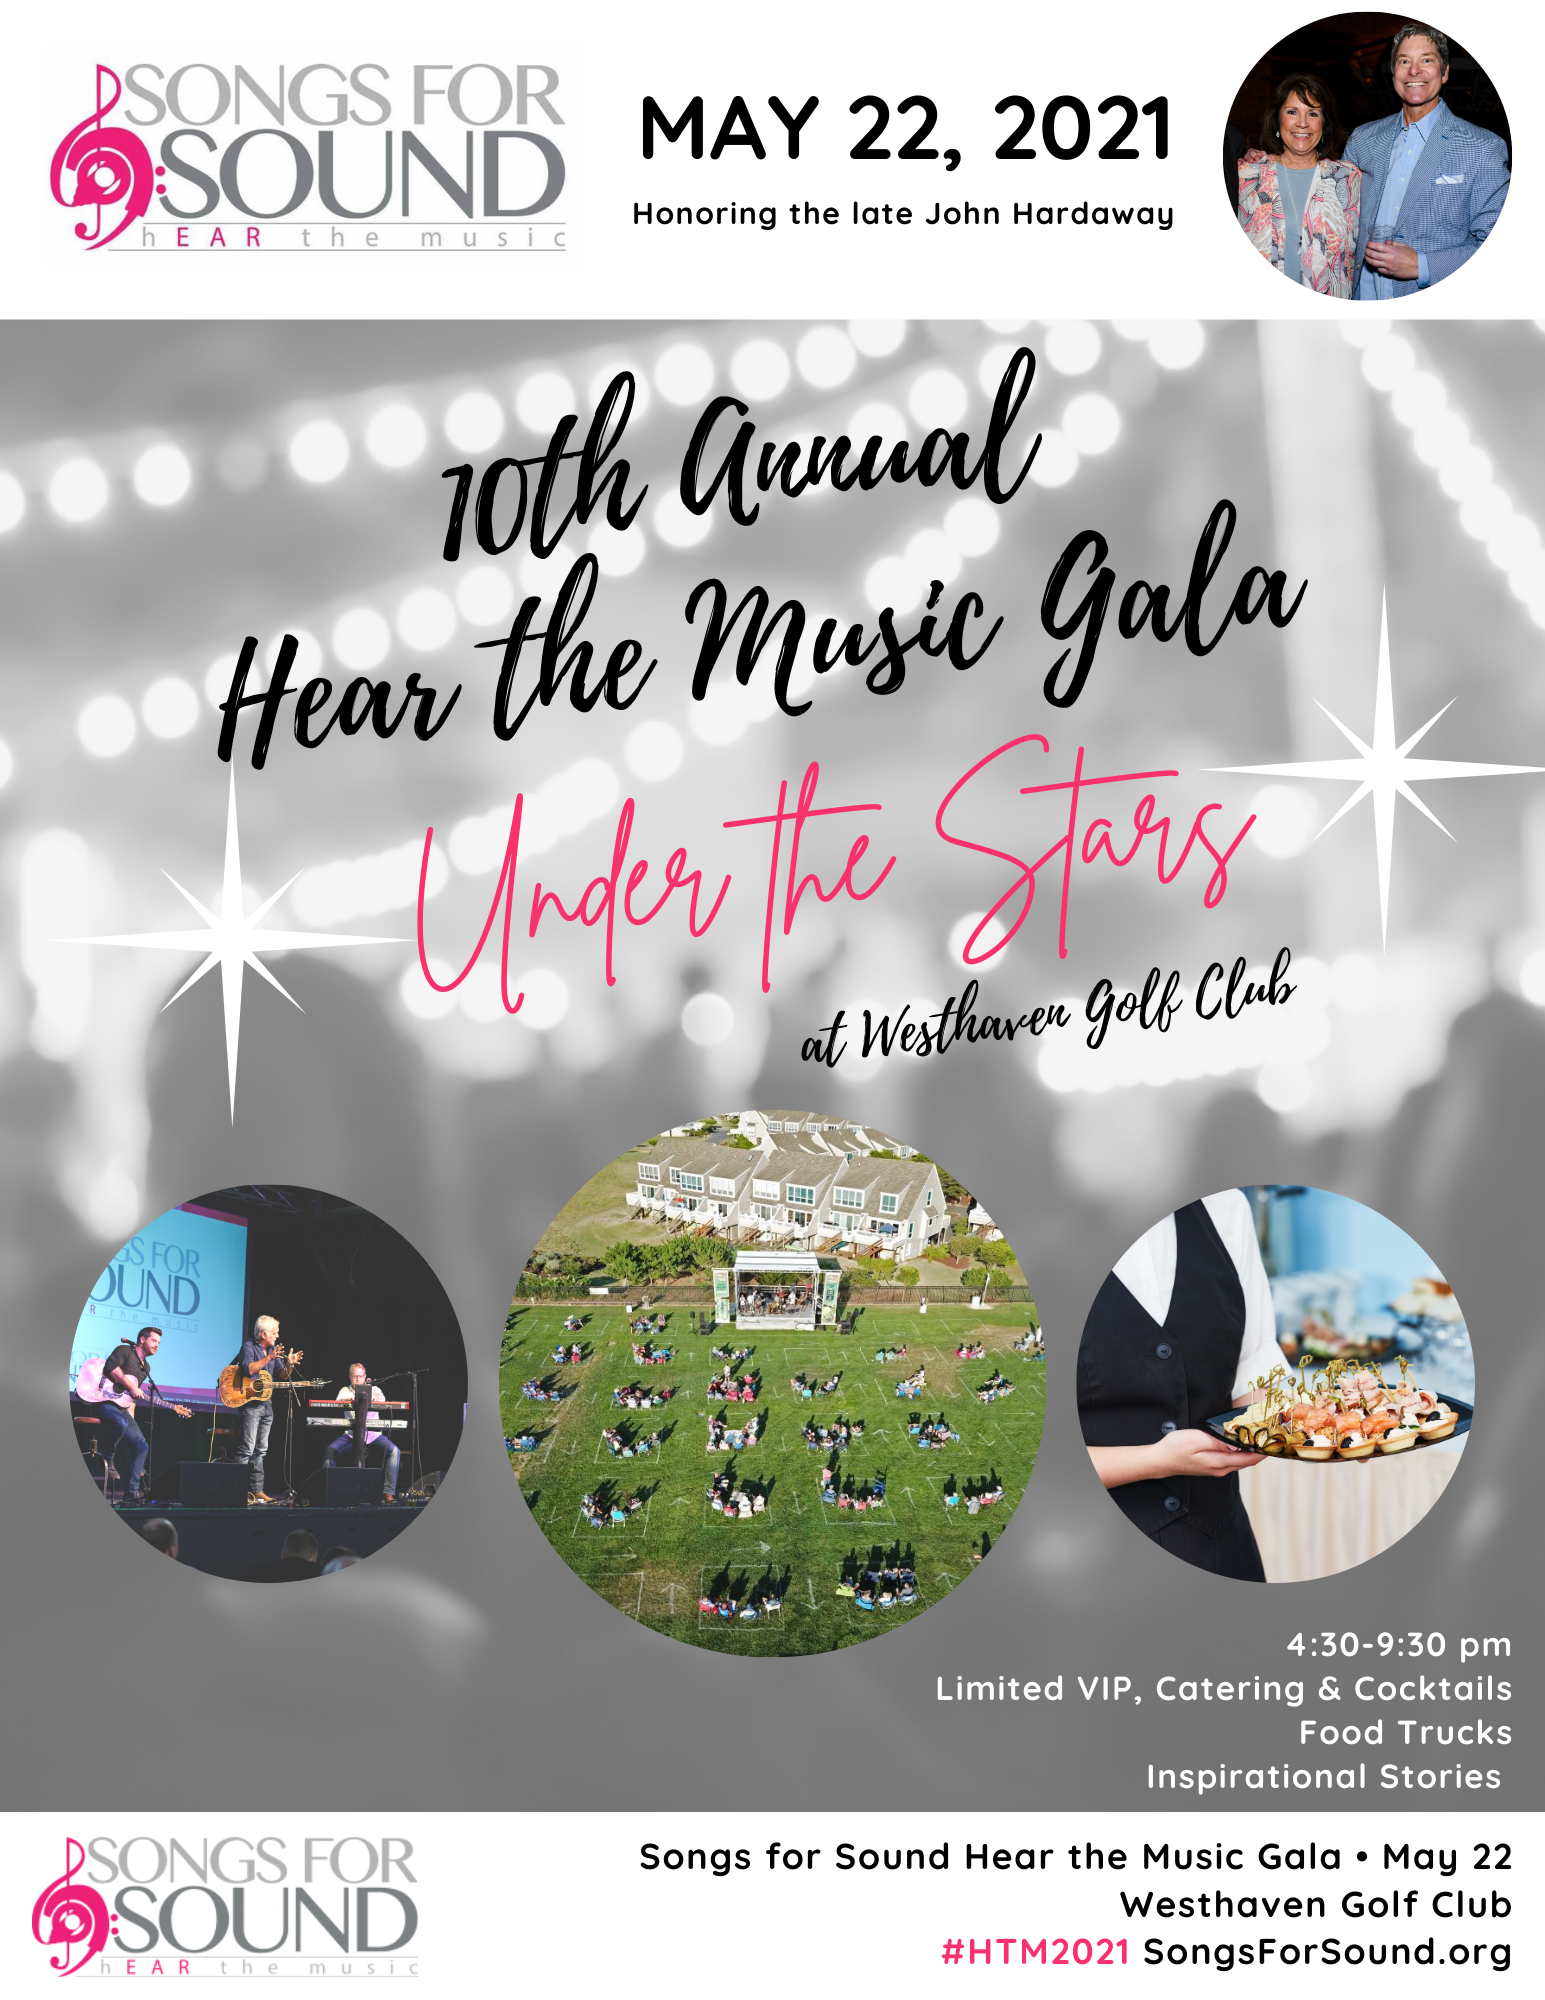 MAY 22nd: 10th Annual Hear the Music Gala Under the Stars